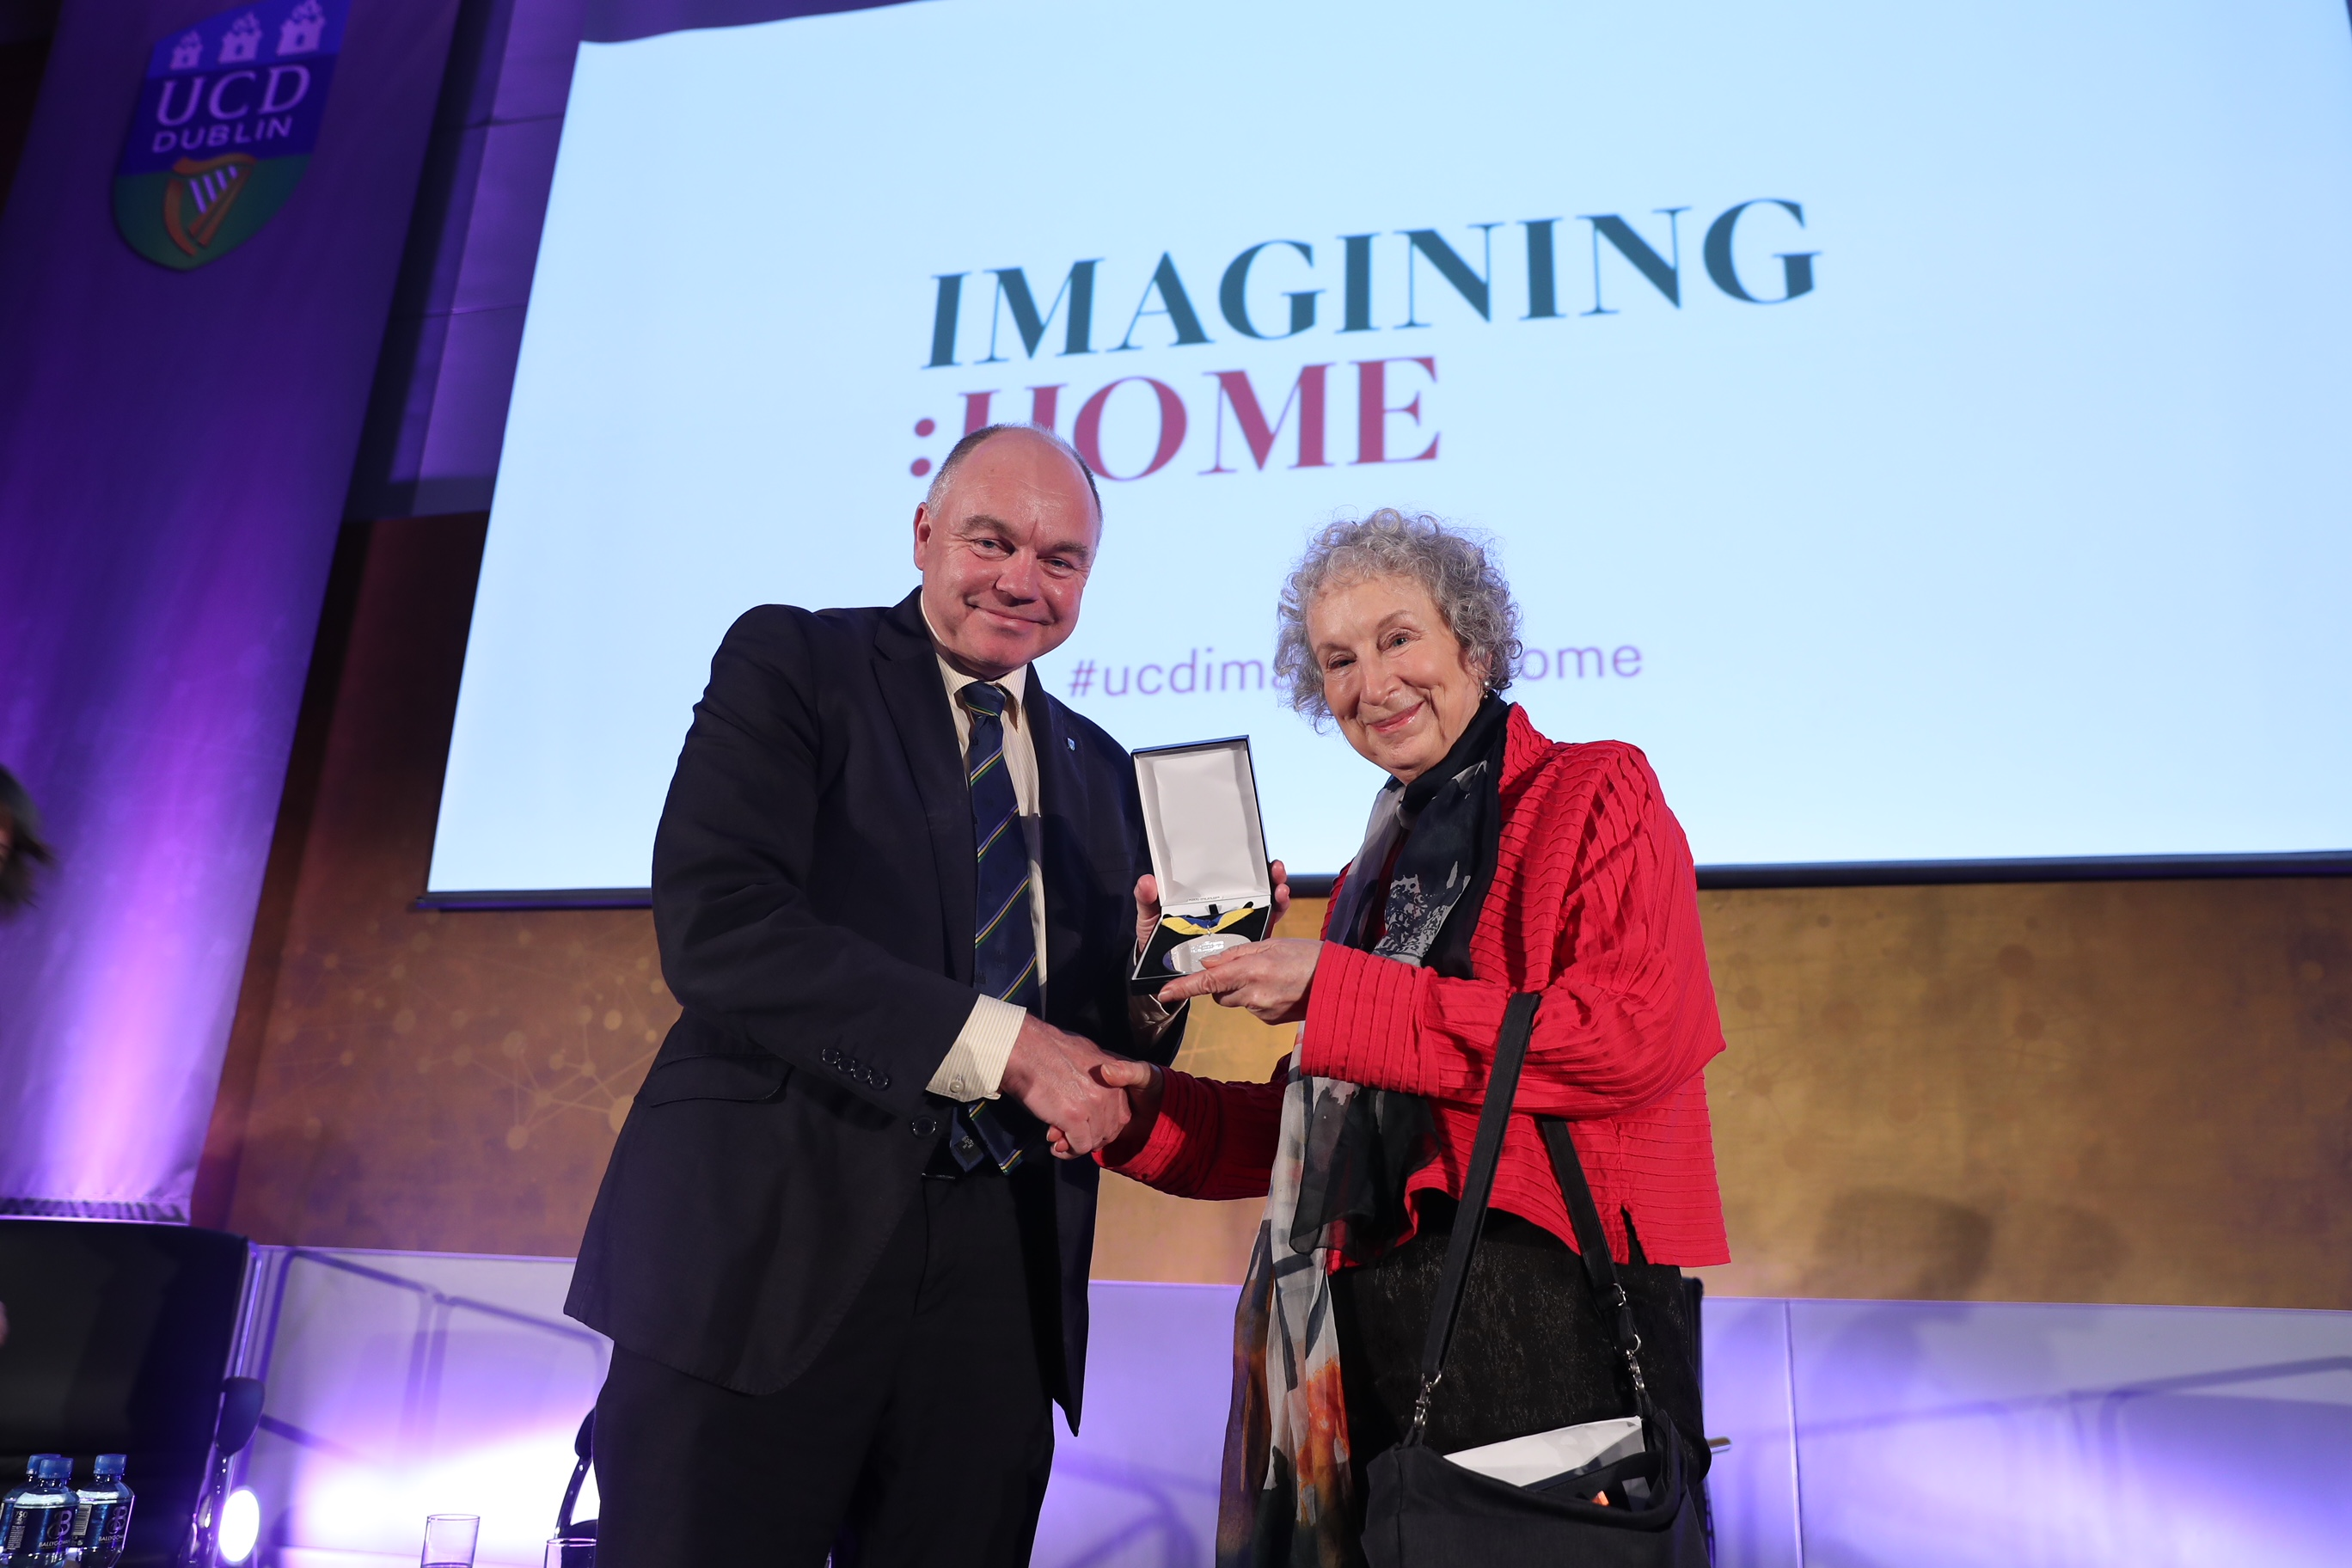 A photo of Margaret Atwood and her Ulysses Medal with President Andrew Deeks